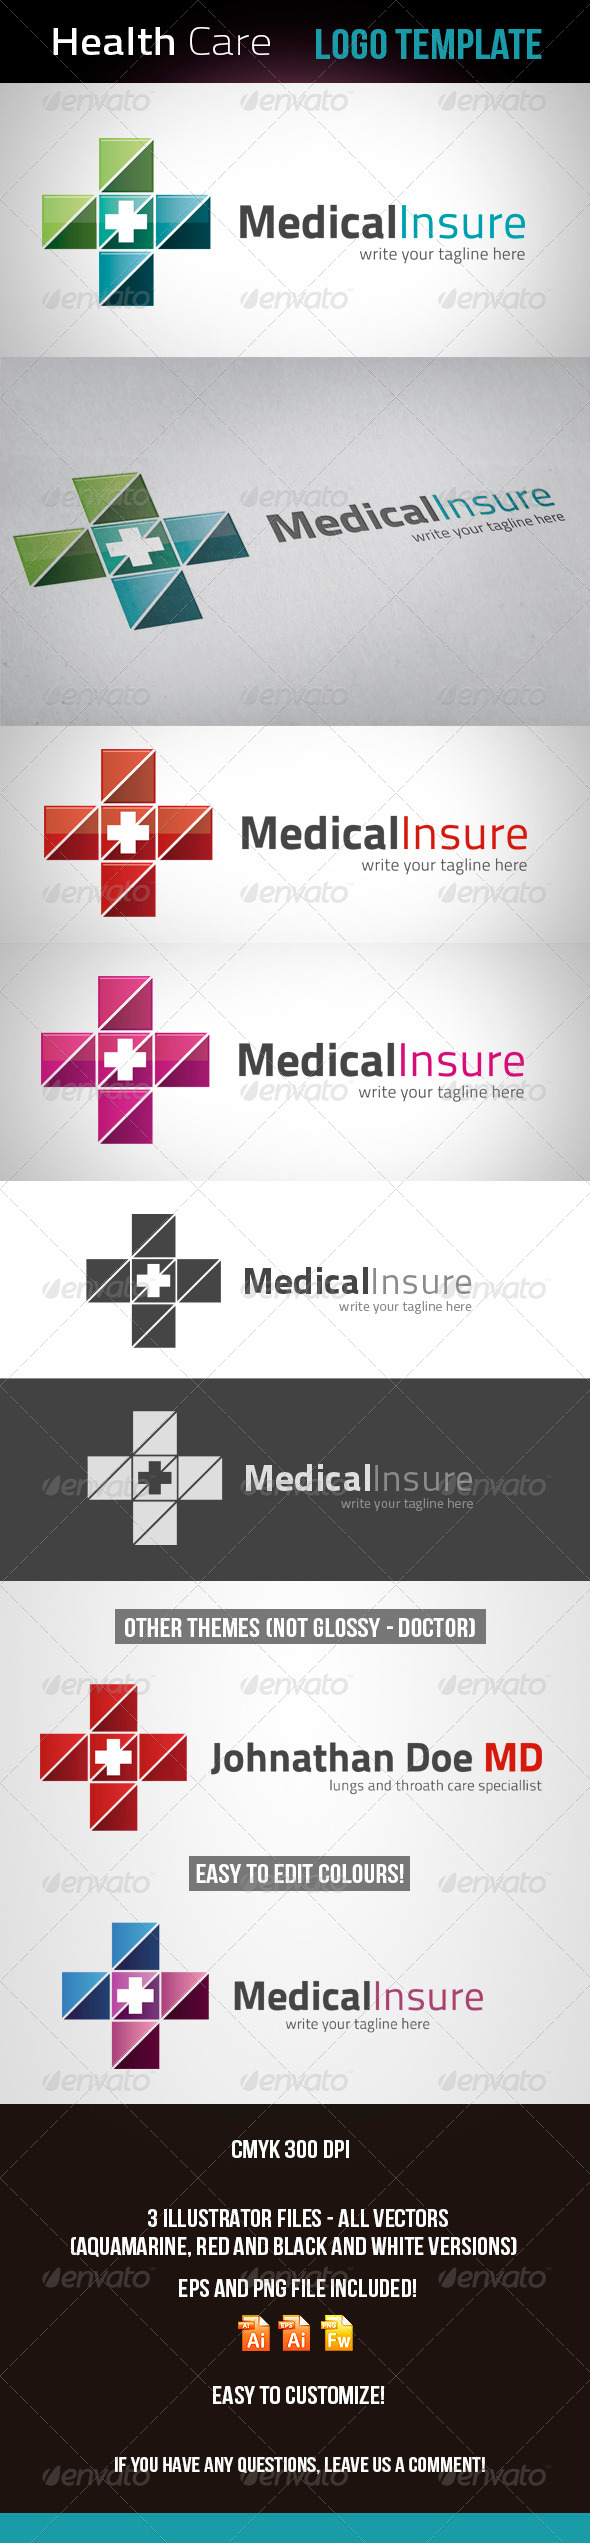 Doctor - Health Care Logo Template - Logo Templates